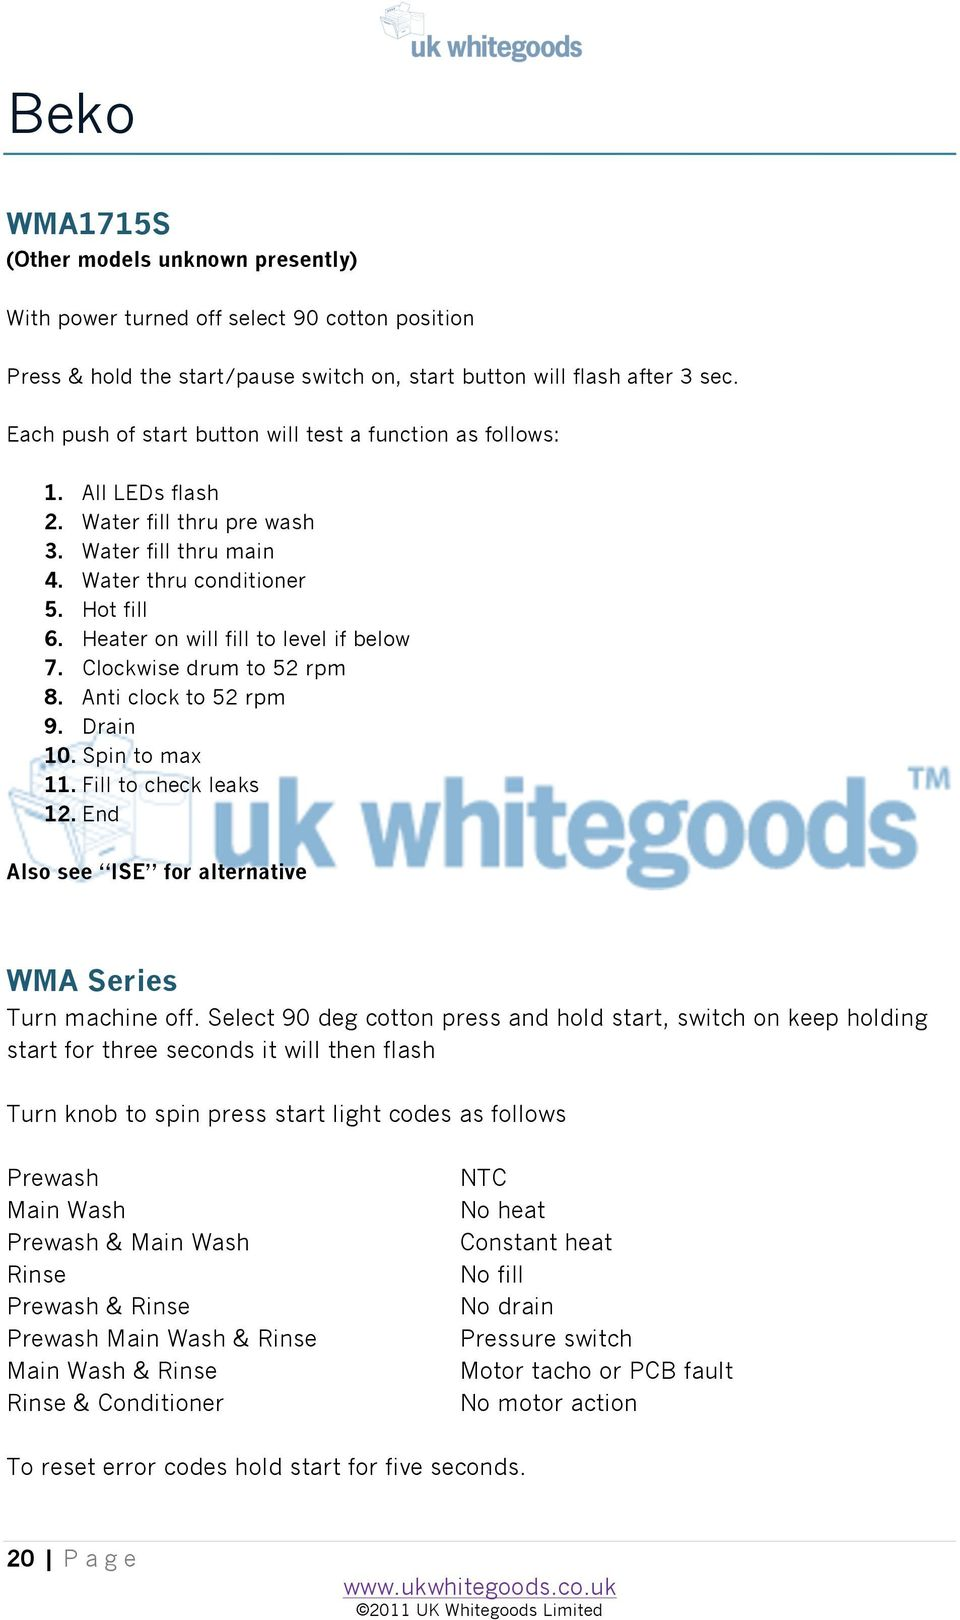 Fault Code Guide Free Edition Pdf Beko Washing Machine Wiring Diagram Heater On Will Fill To Level If Below 7 Clockwise Drum 52 Rpm 8 21 Machines